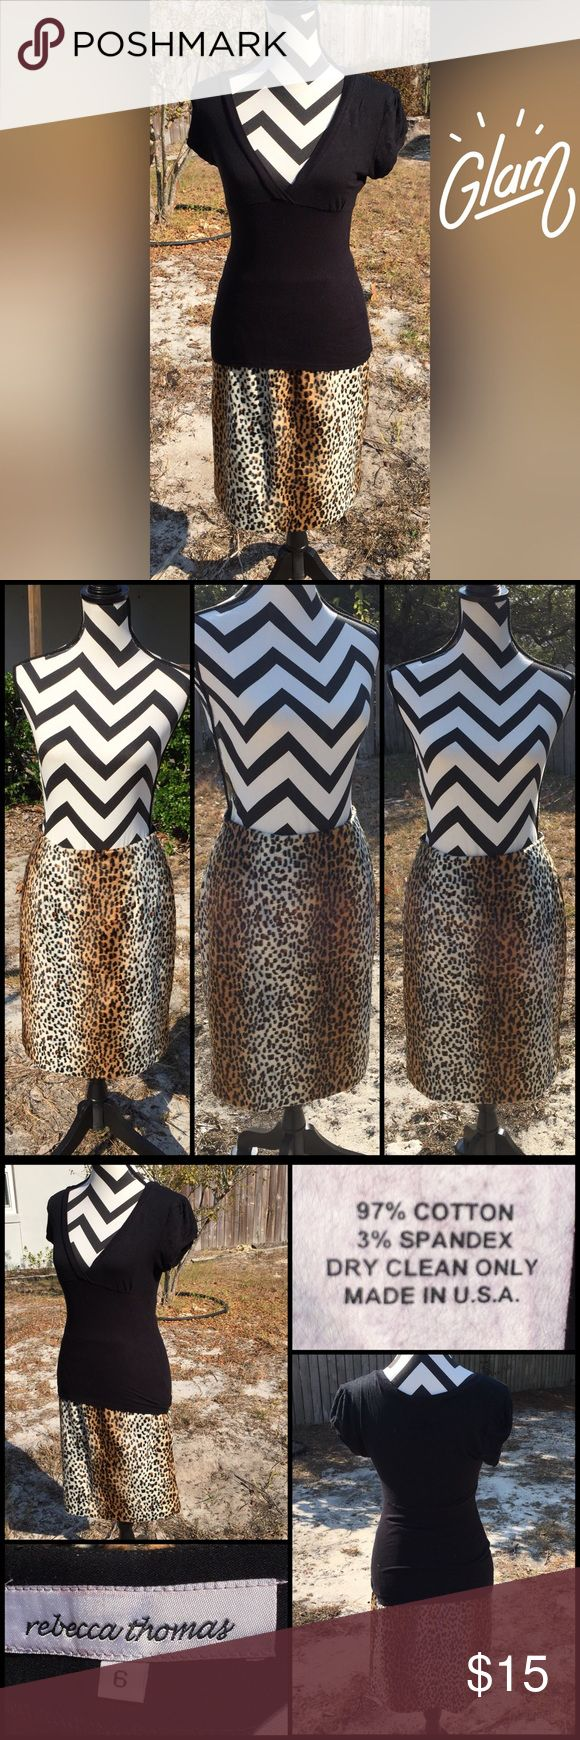 """Faux Fur Cheetah Skirt Rebecca Thomas size 6 cheetah print skit. Faux fur feel with black lining underneath so no need to wear a slip. Zips in back. 97% cotton, 3% spandex. Dry clean only. Excellent preowned condition. 22.25"""" length, 27"""" waist, 4.5"""" slit in the back center of Skirt. Rebecca Thomas Skirts Midi"""